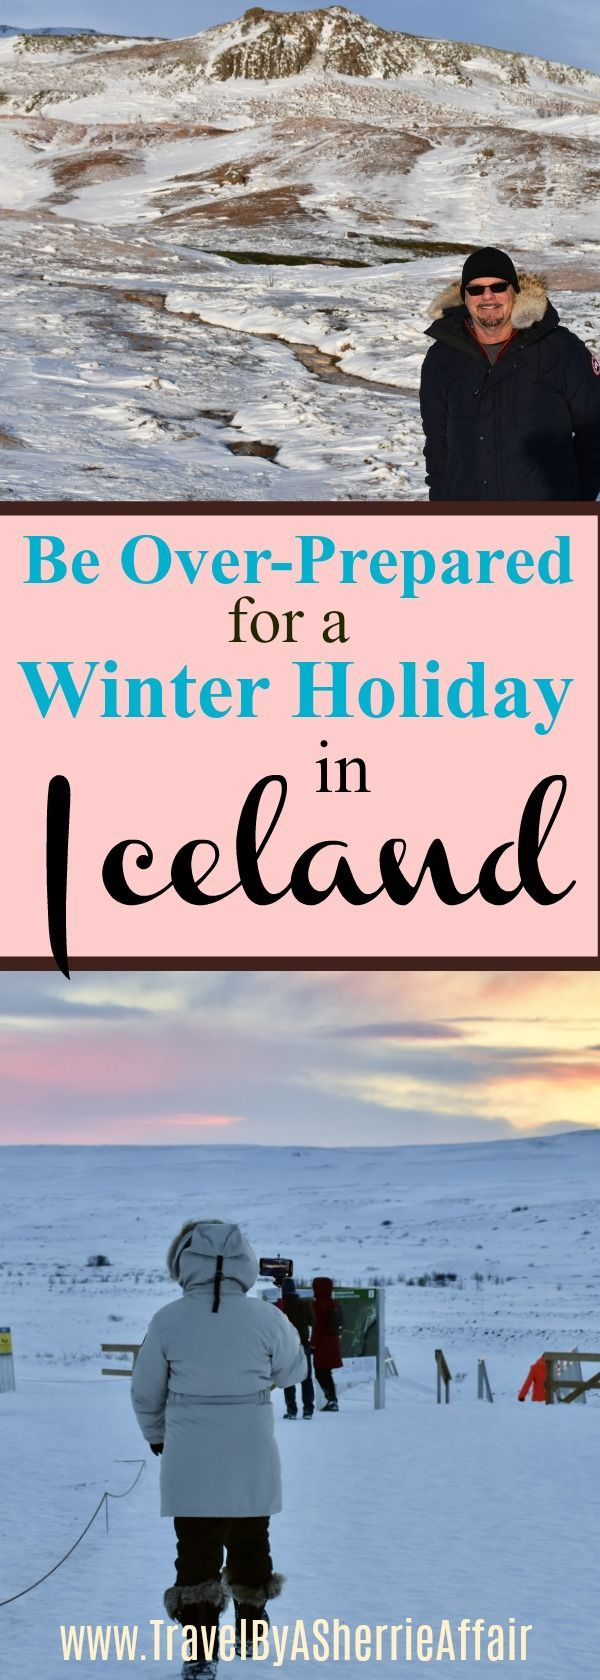 Yes it is better to Over-Prepared when you take a trip to Iceland in the winter.  The winter in Iceland is amazing and beautiful, but you will enjoy yourself more with information on  a few key things to bring and to know before going!  #Iceland #Icelandwinter #travel #Icelandpacking #Wintertrip #Packinglist